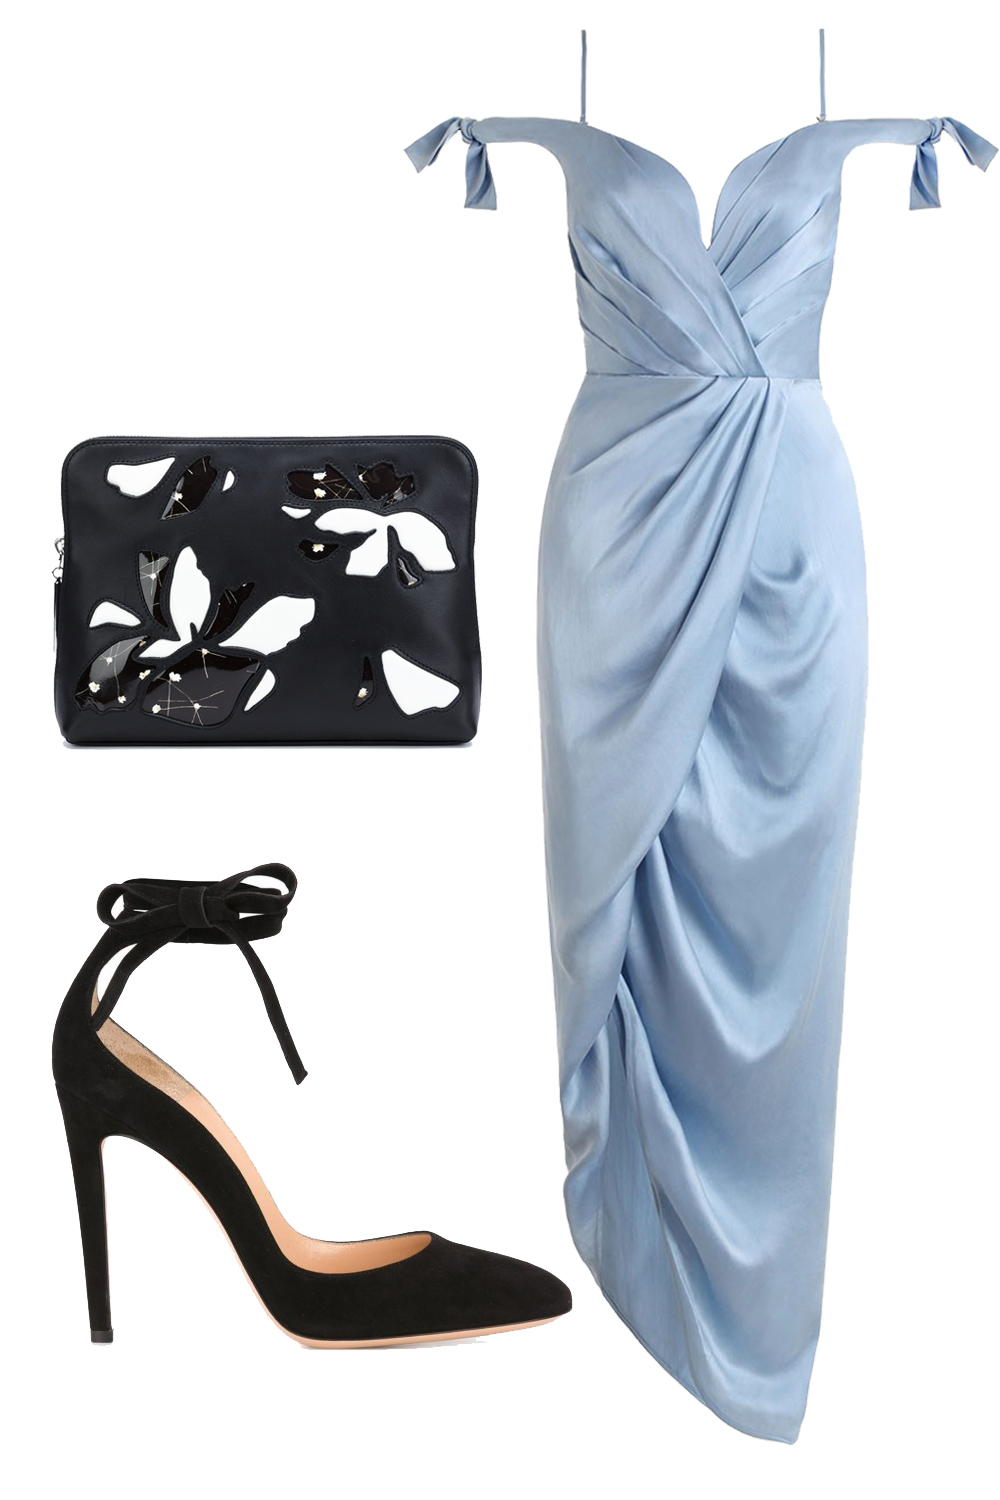 Outstanding Outfits To Wear To A Winter Wedding Elaboration - All ...